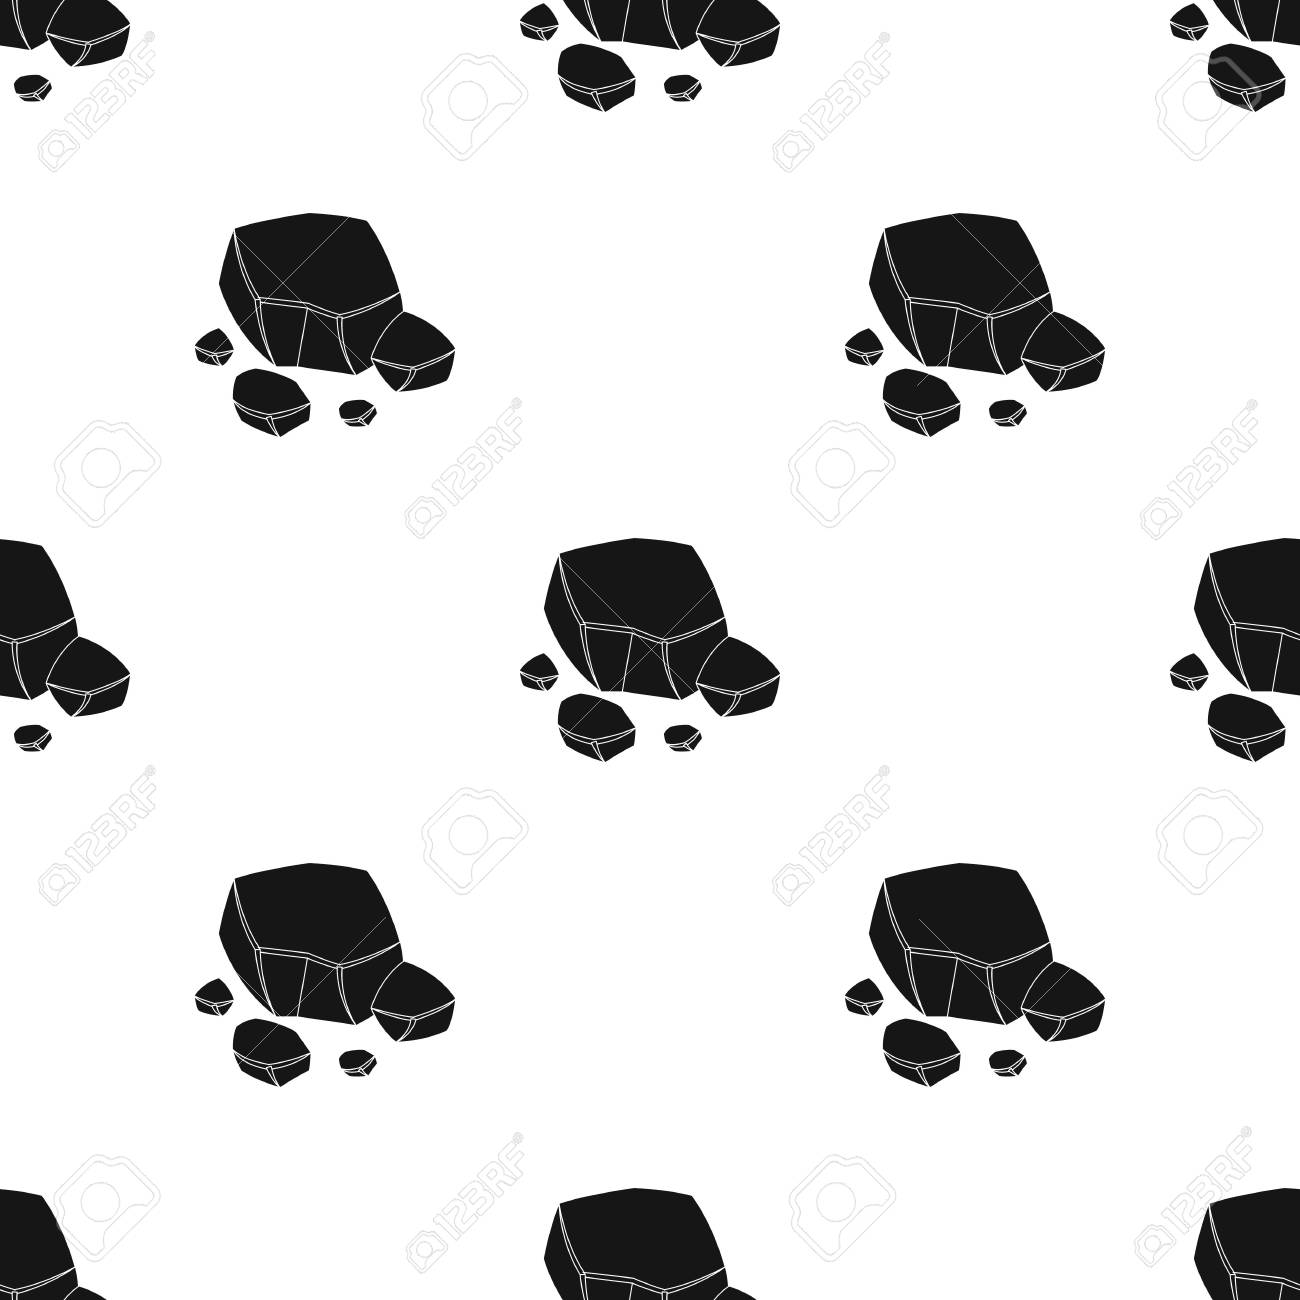 Copper ore icon in black design isolated on white background copper ore icon in black design isolated on white background precious minerals and jeweler symbol buycottarizona Image collections